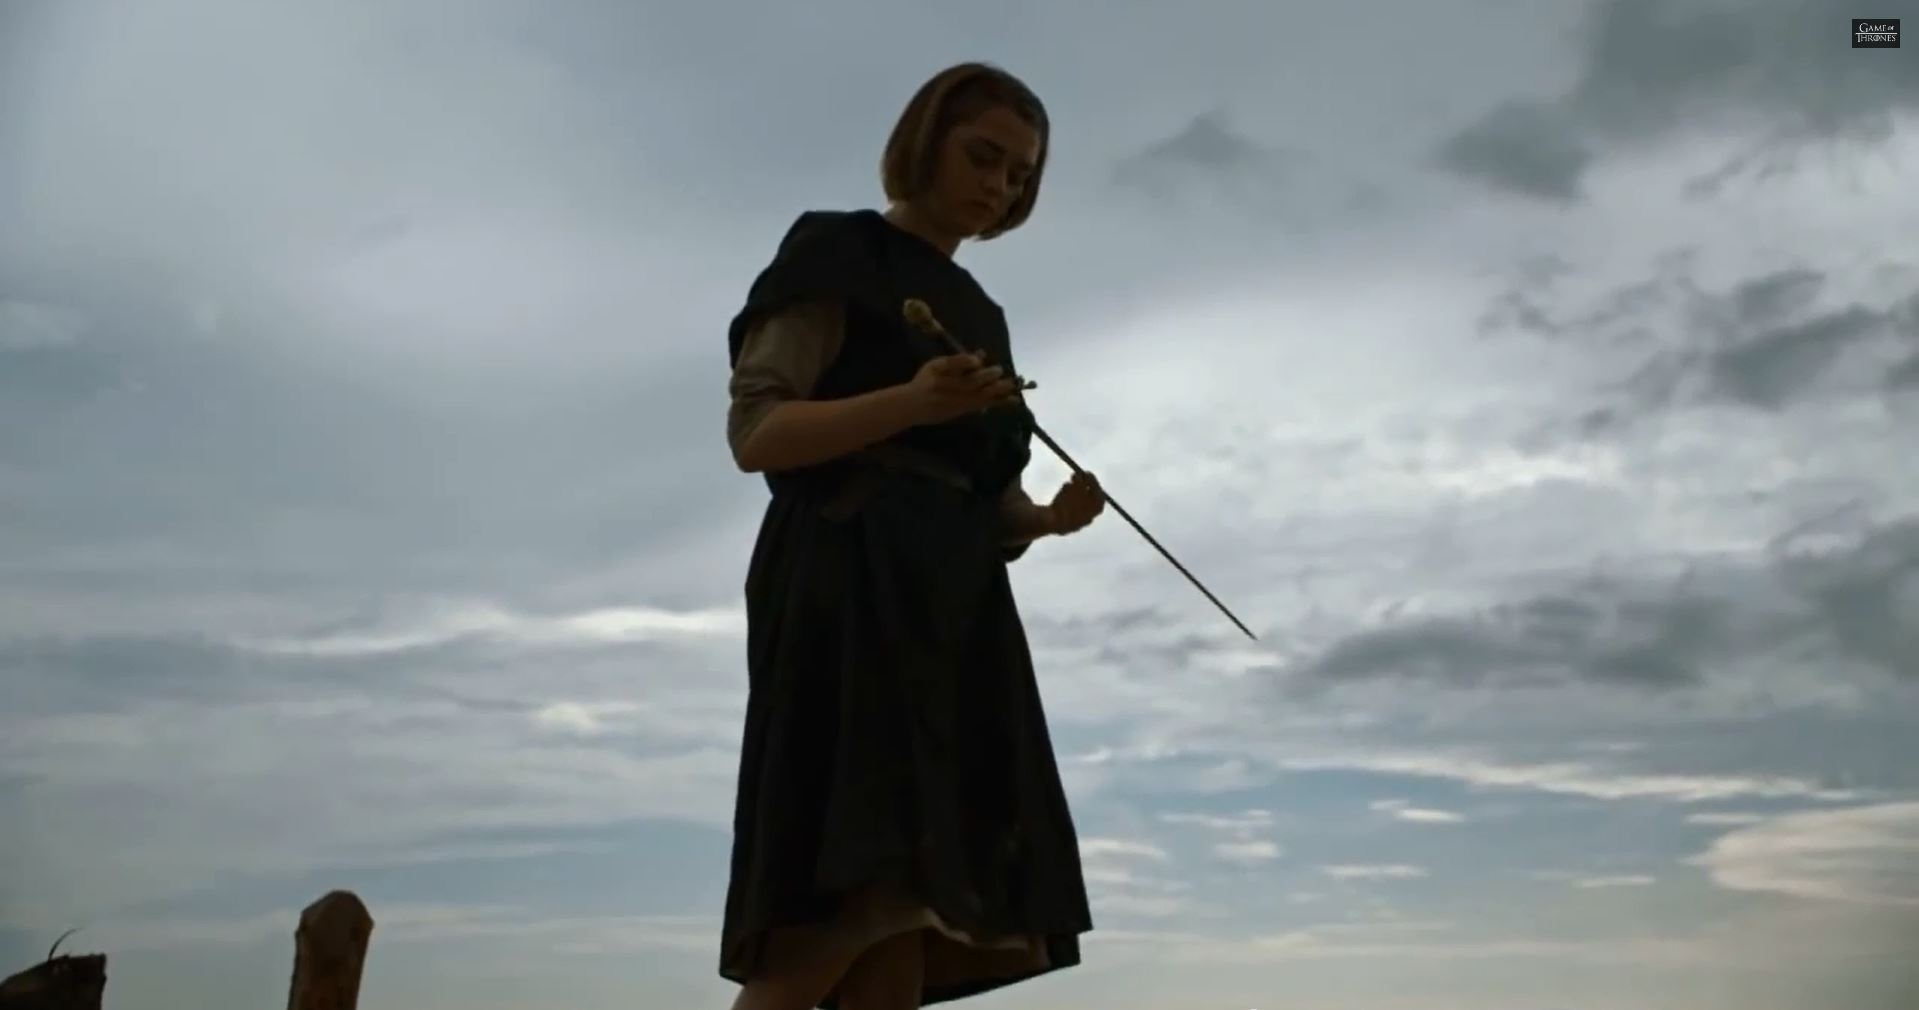 Game Of Thrones Season 5 Preview. Maisie Williams as Arya Stark